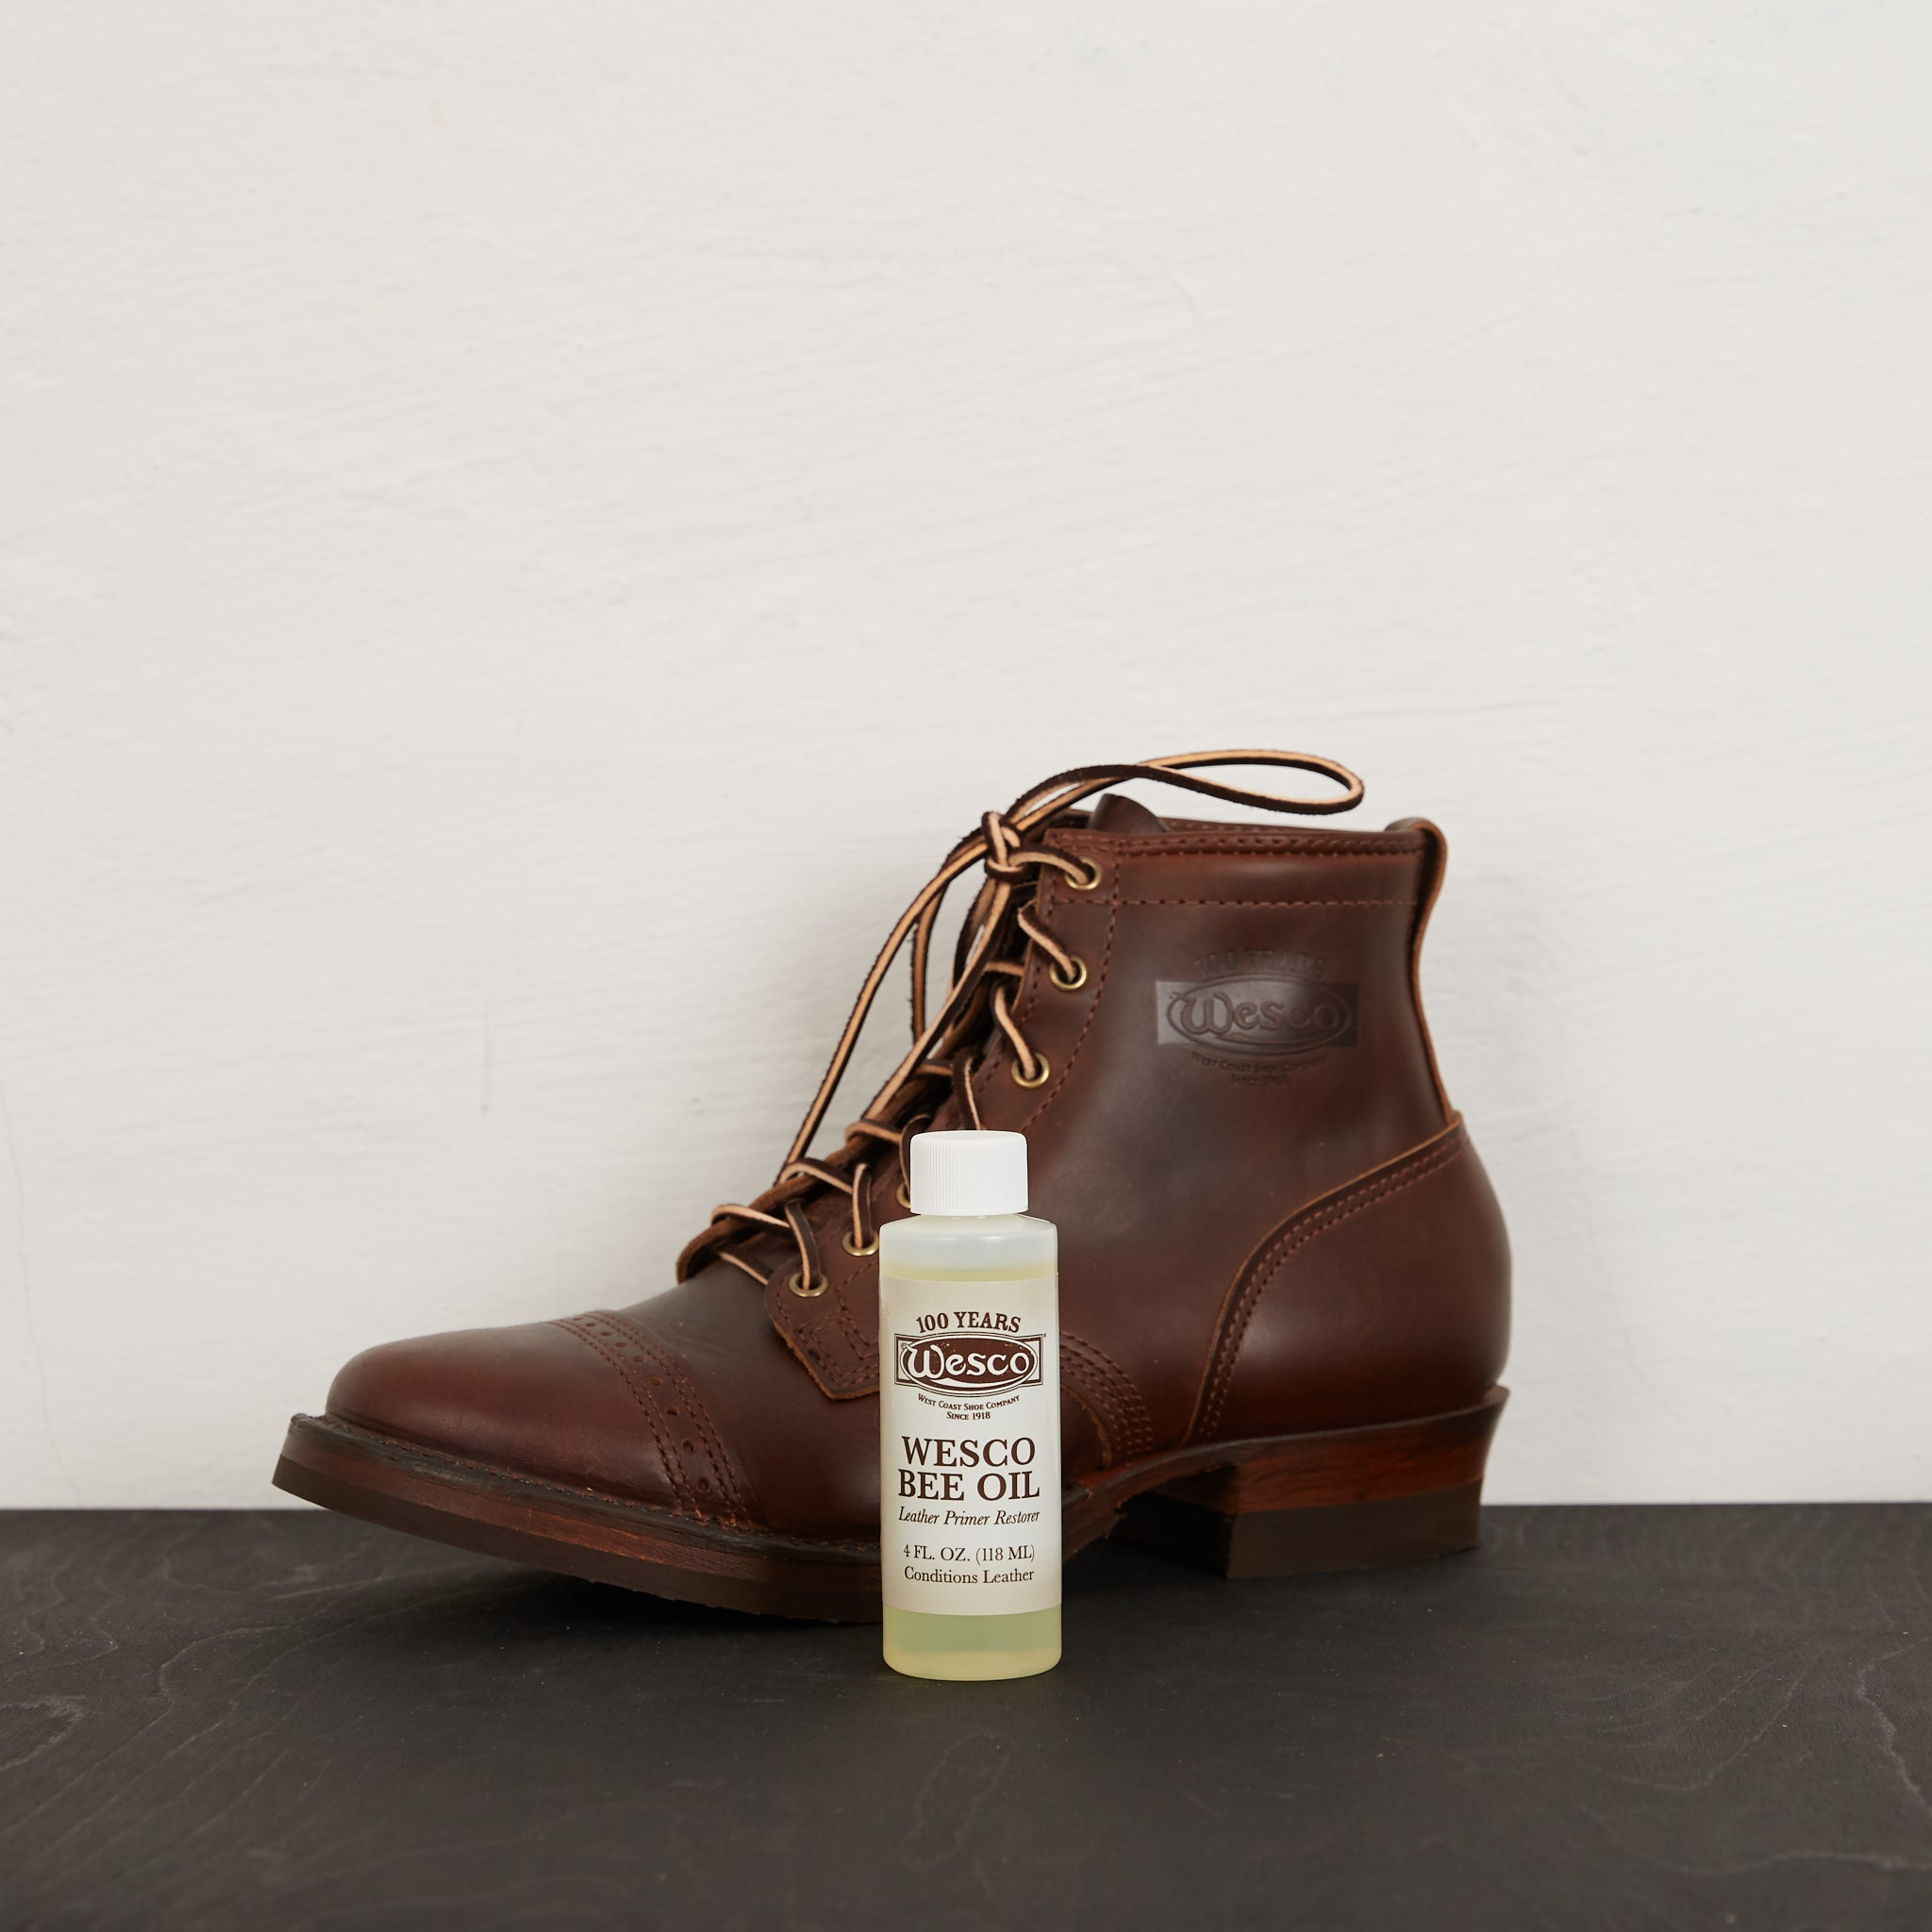 Wesco Leather Boot Dressing Bee Oil